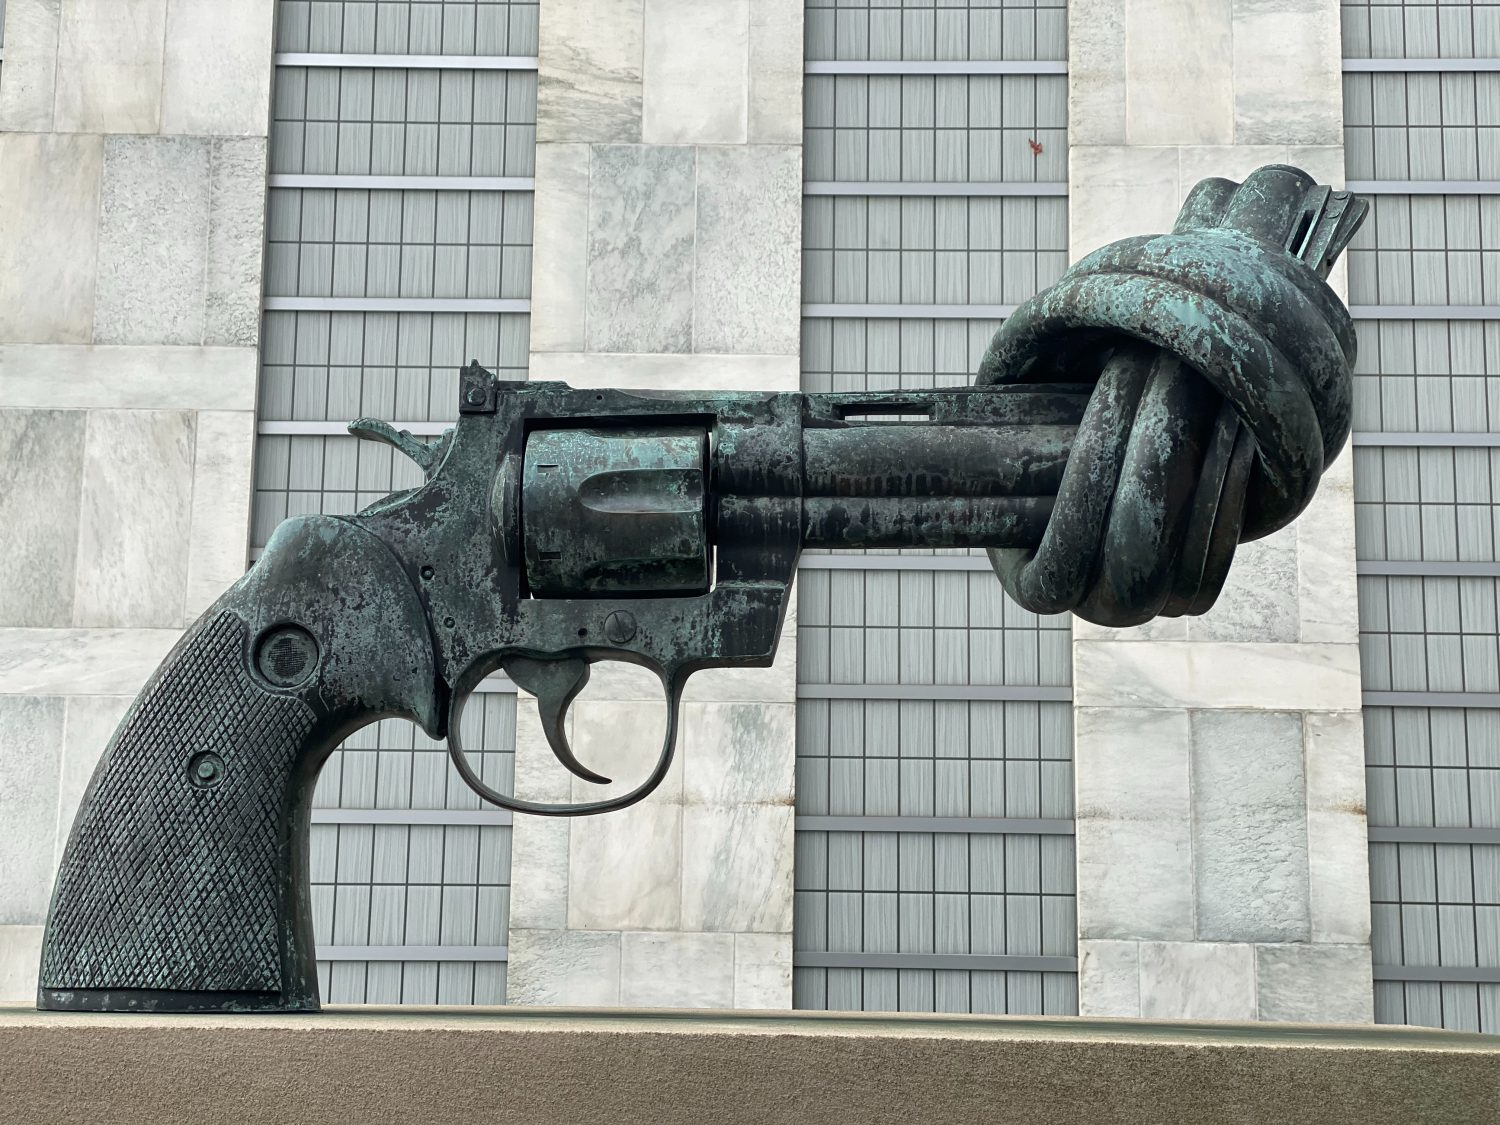 gun control: how to protect students from the proliferation of illegal weapons on the internet?